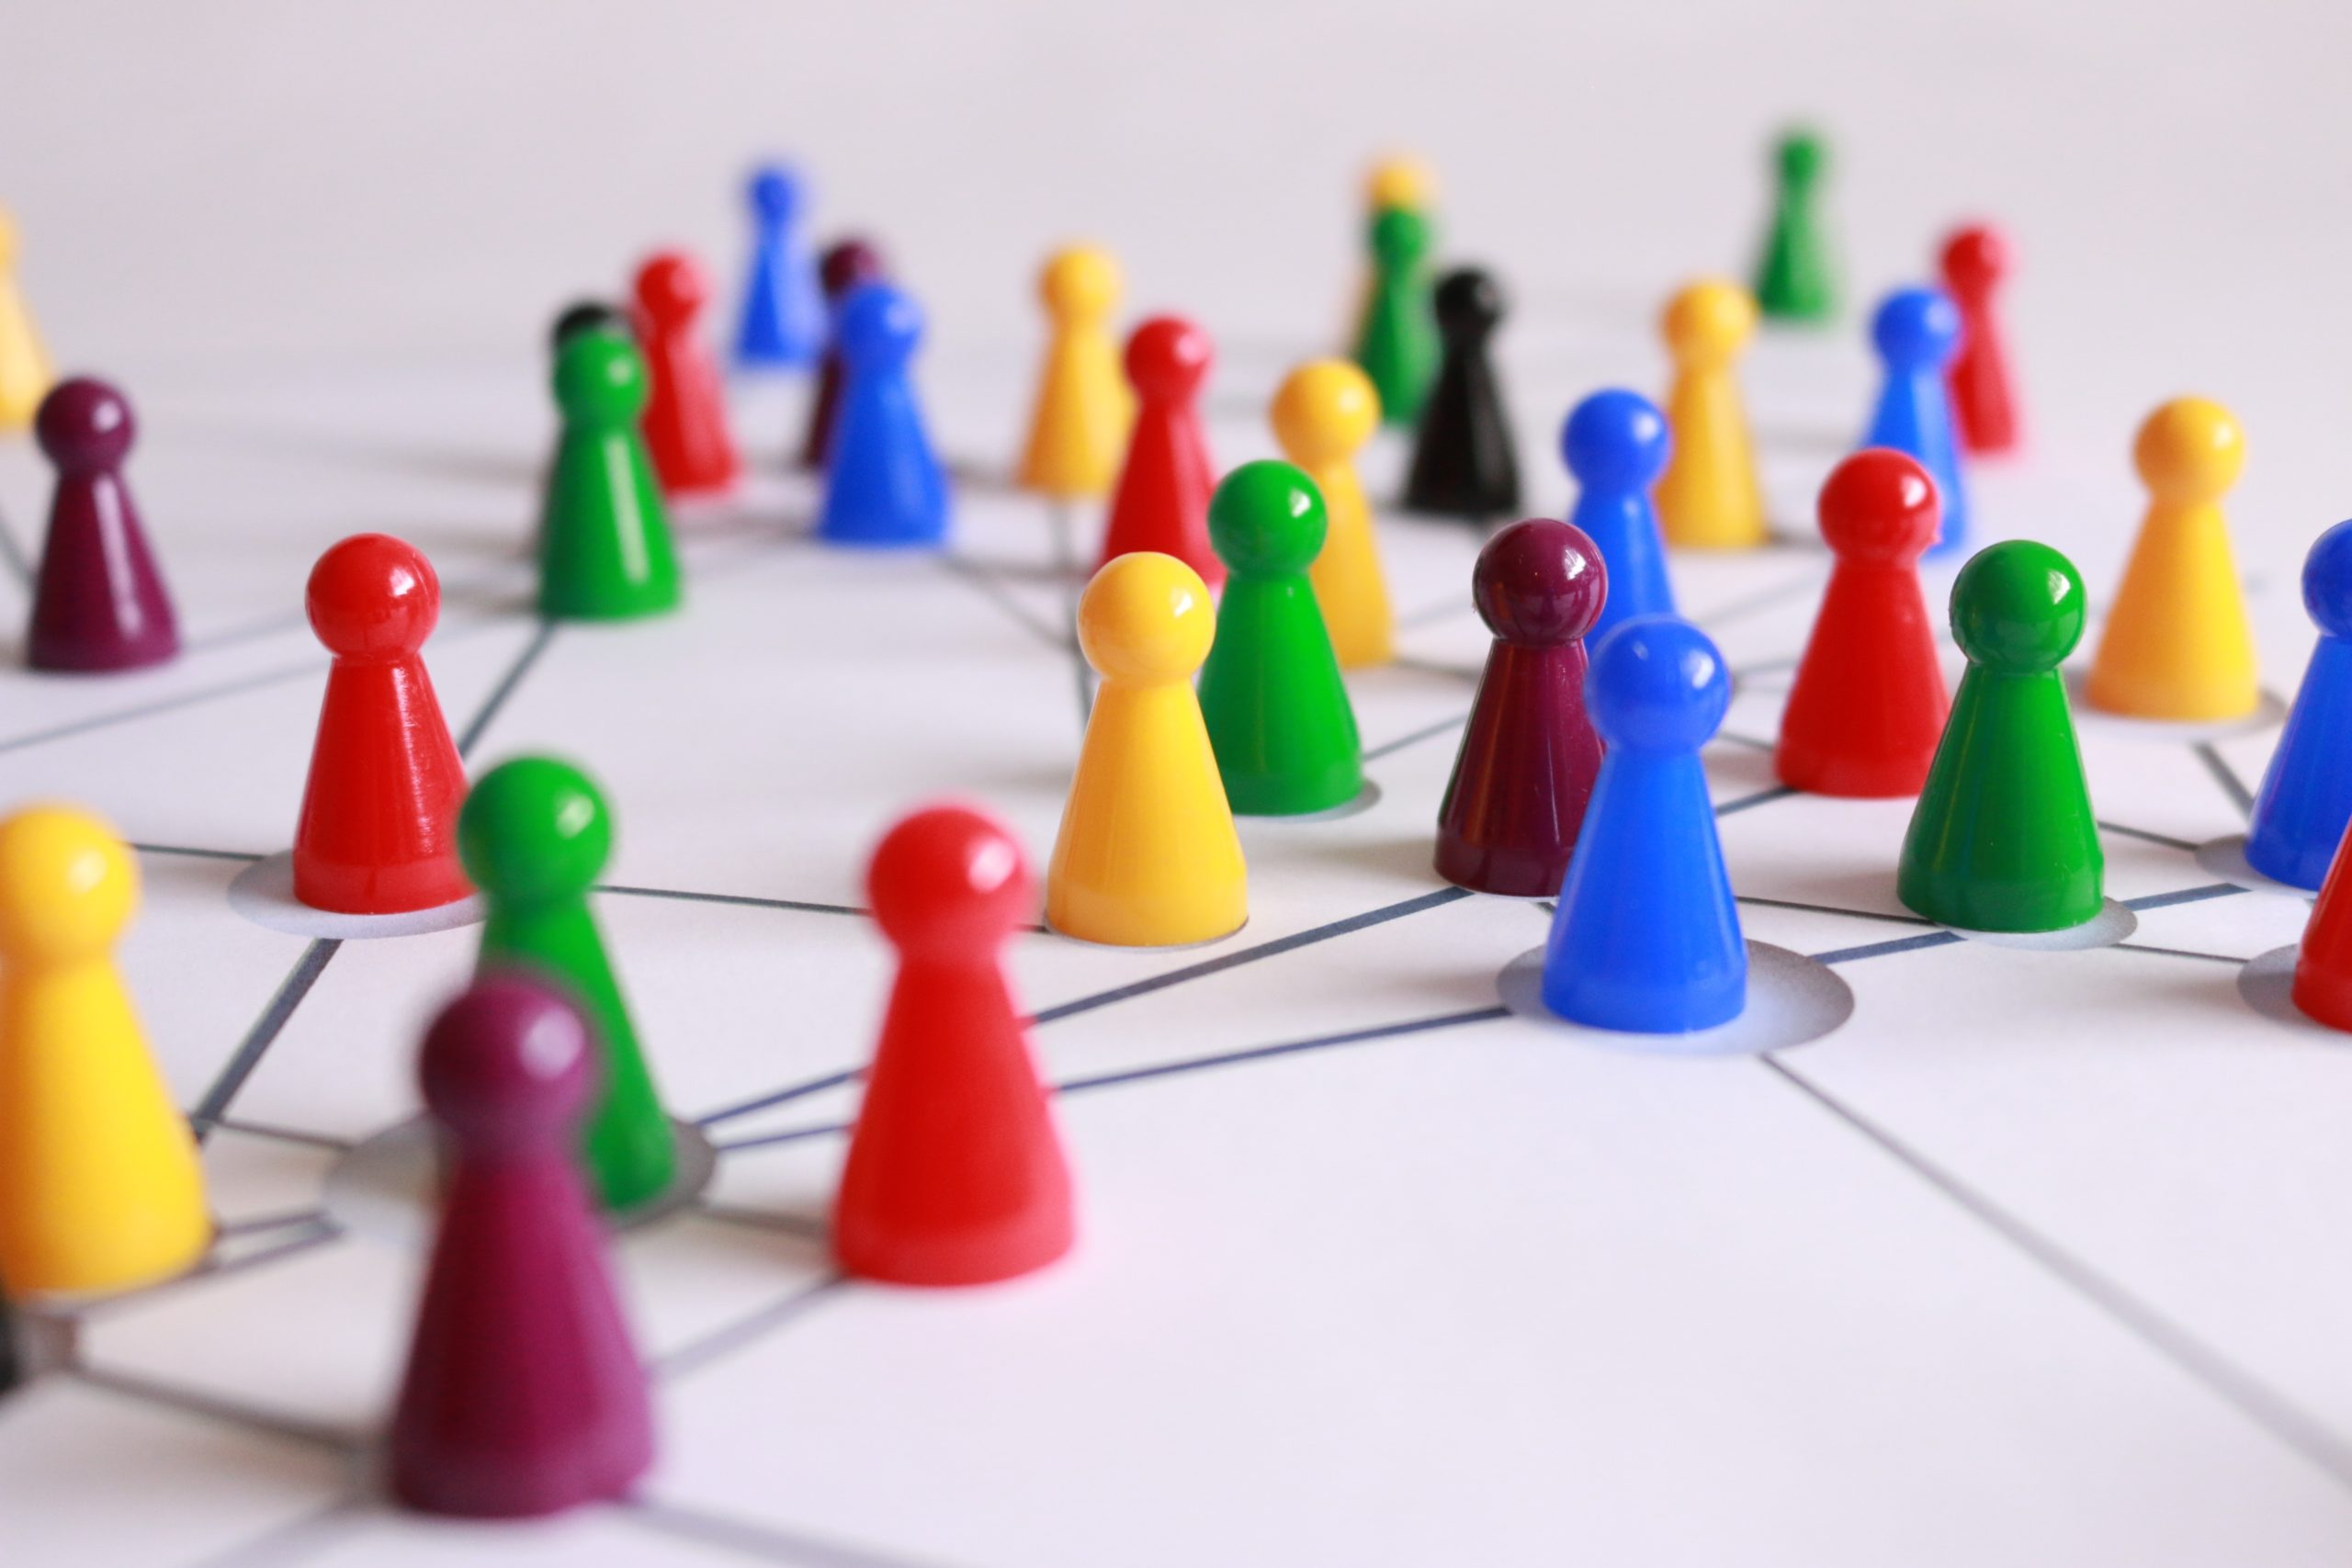 Game pawns of many colors laid out on a white surface.